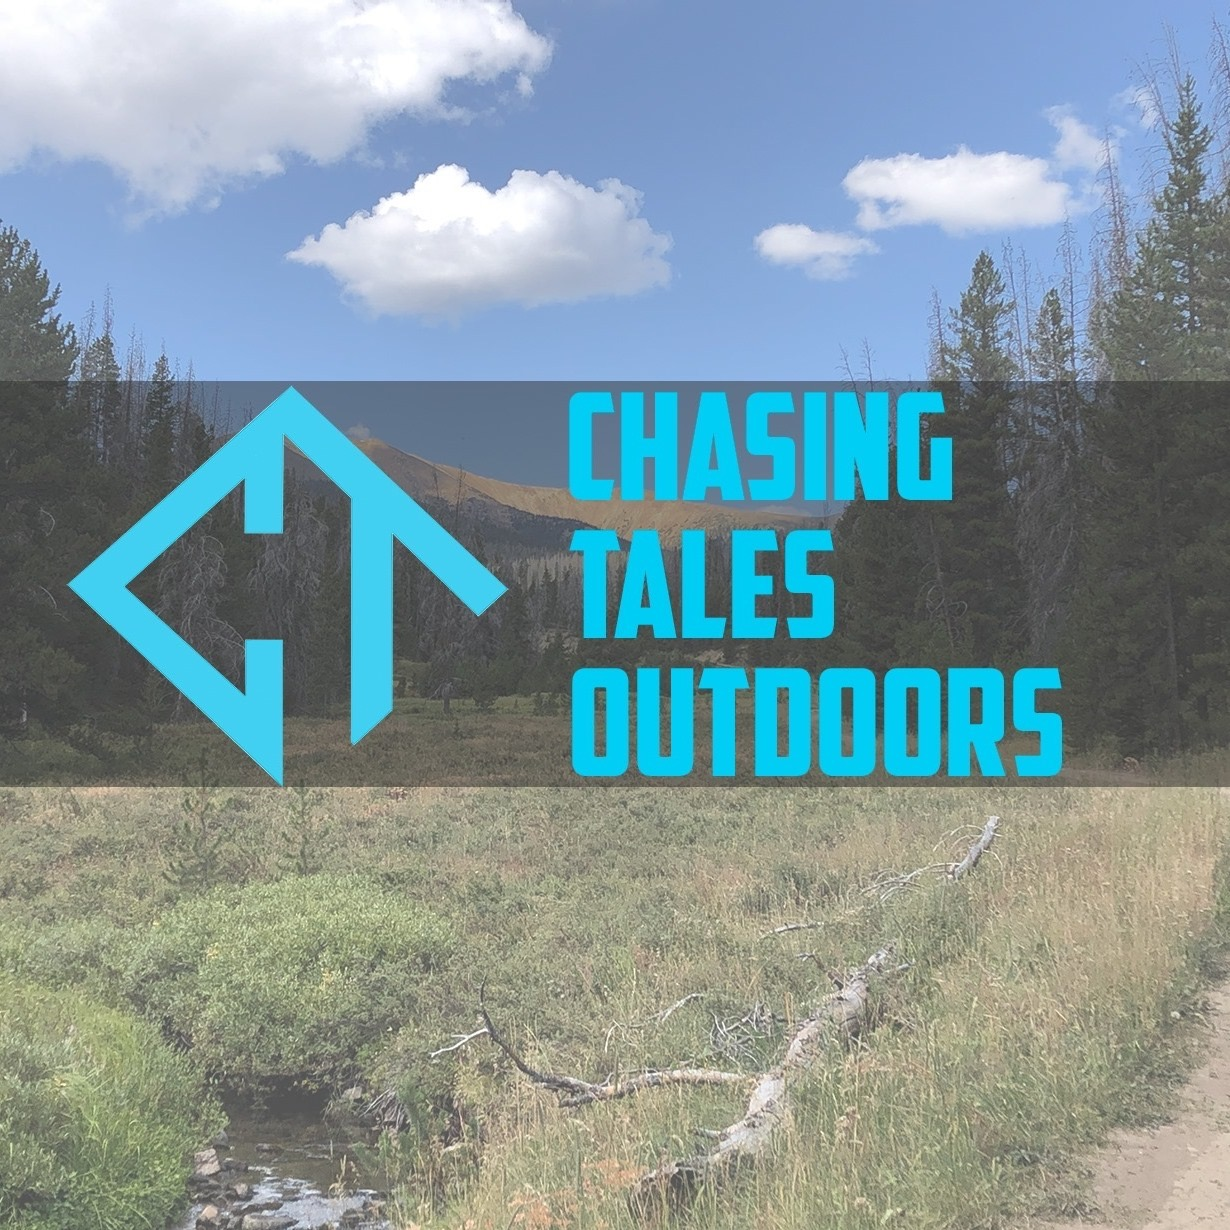 Talking Turkey and Conservation on Chasing Tales